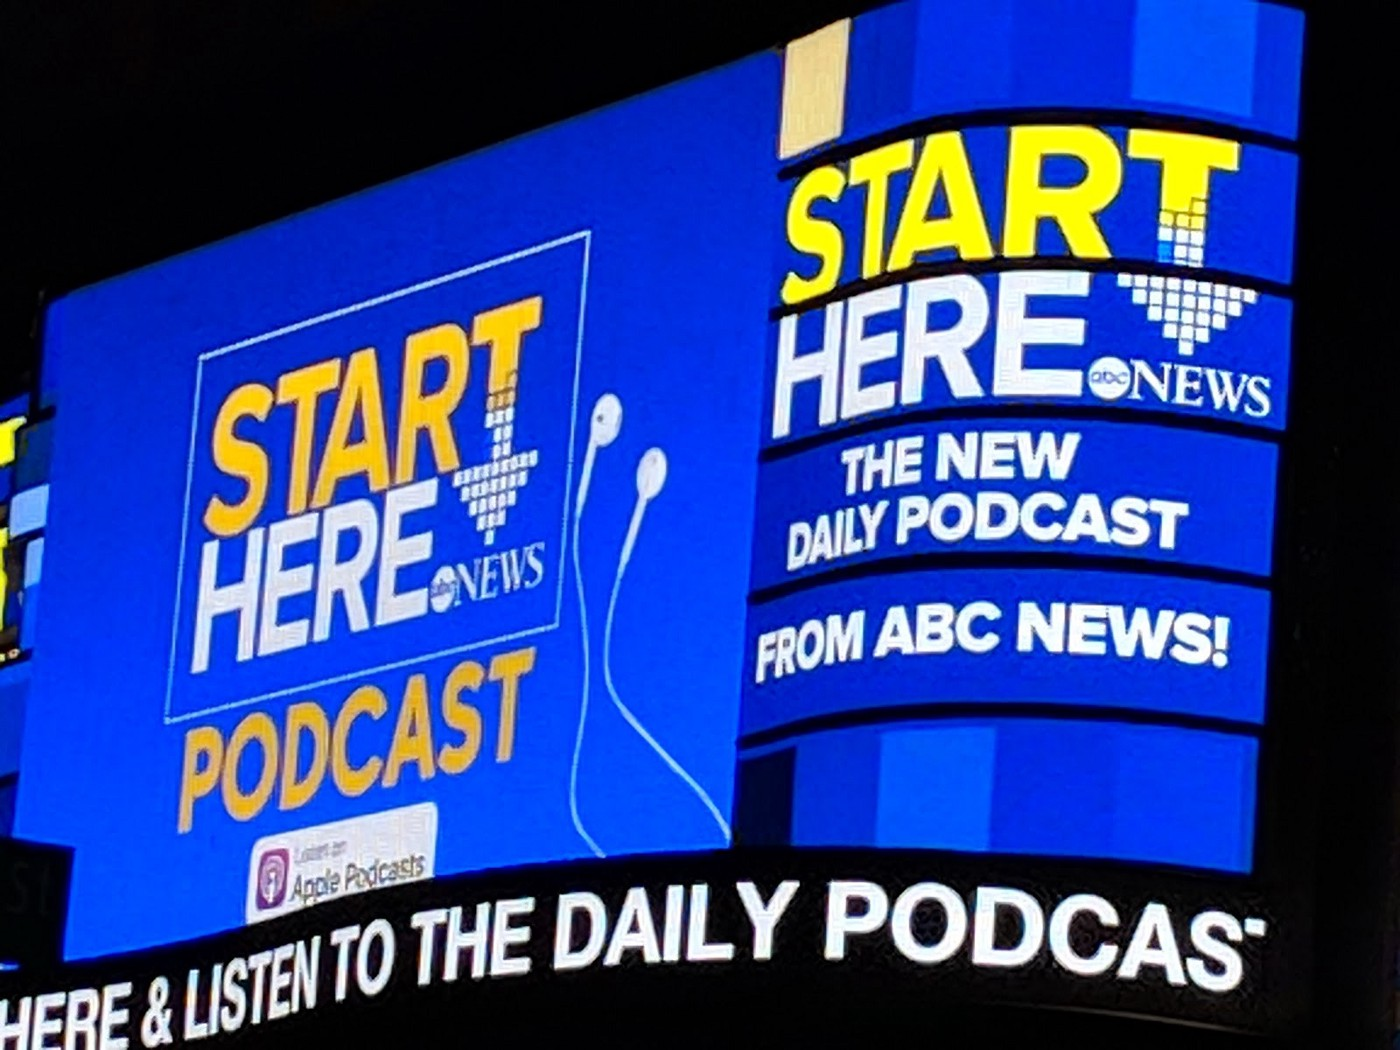 Best Daily News Podcast 2020 13 Predictions for Podcasting in 2019   Pacific Content